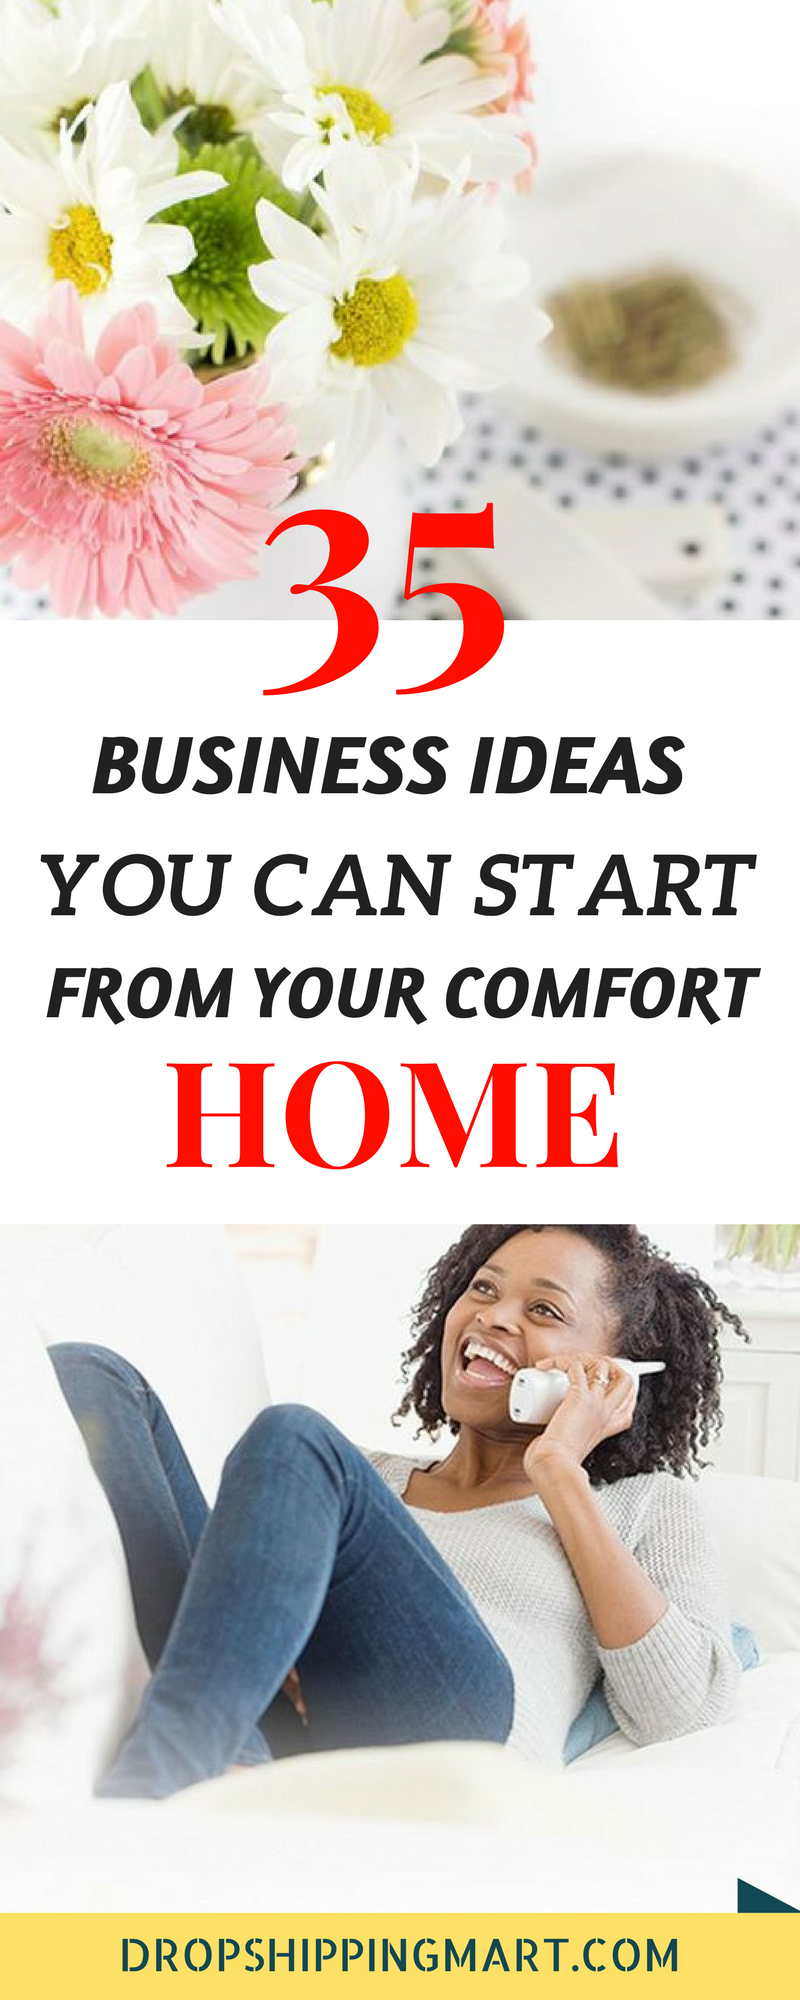 Colorful Home Business Ideas For Women Image Collection - Home ...